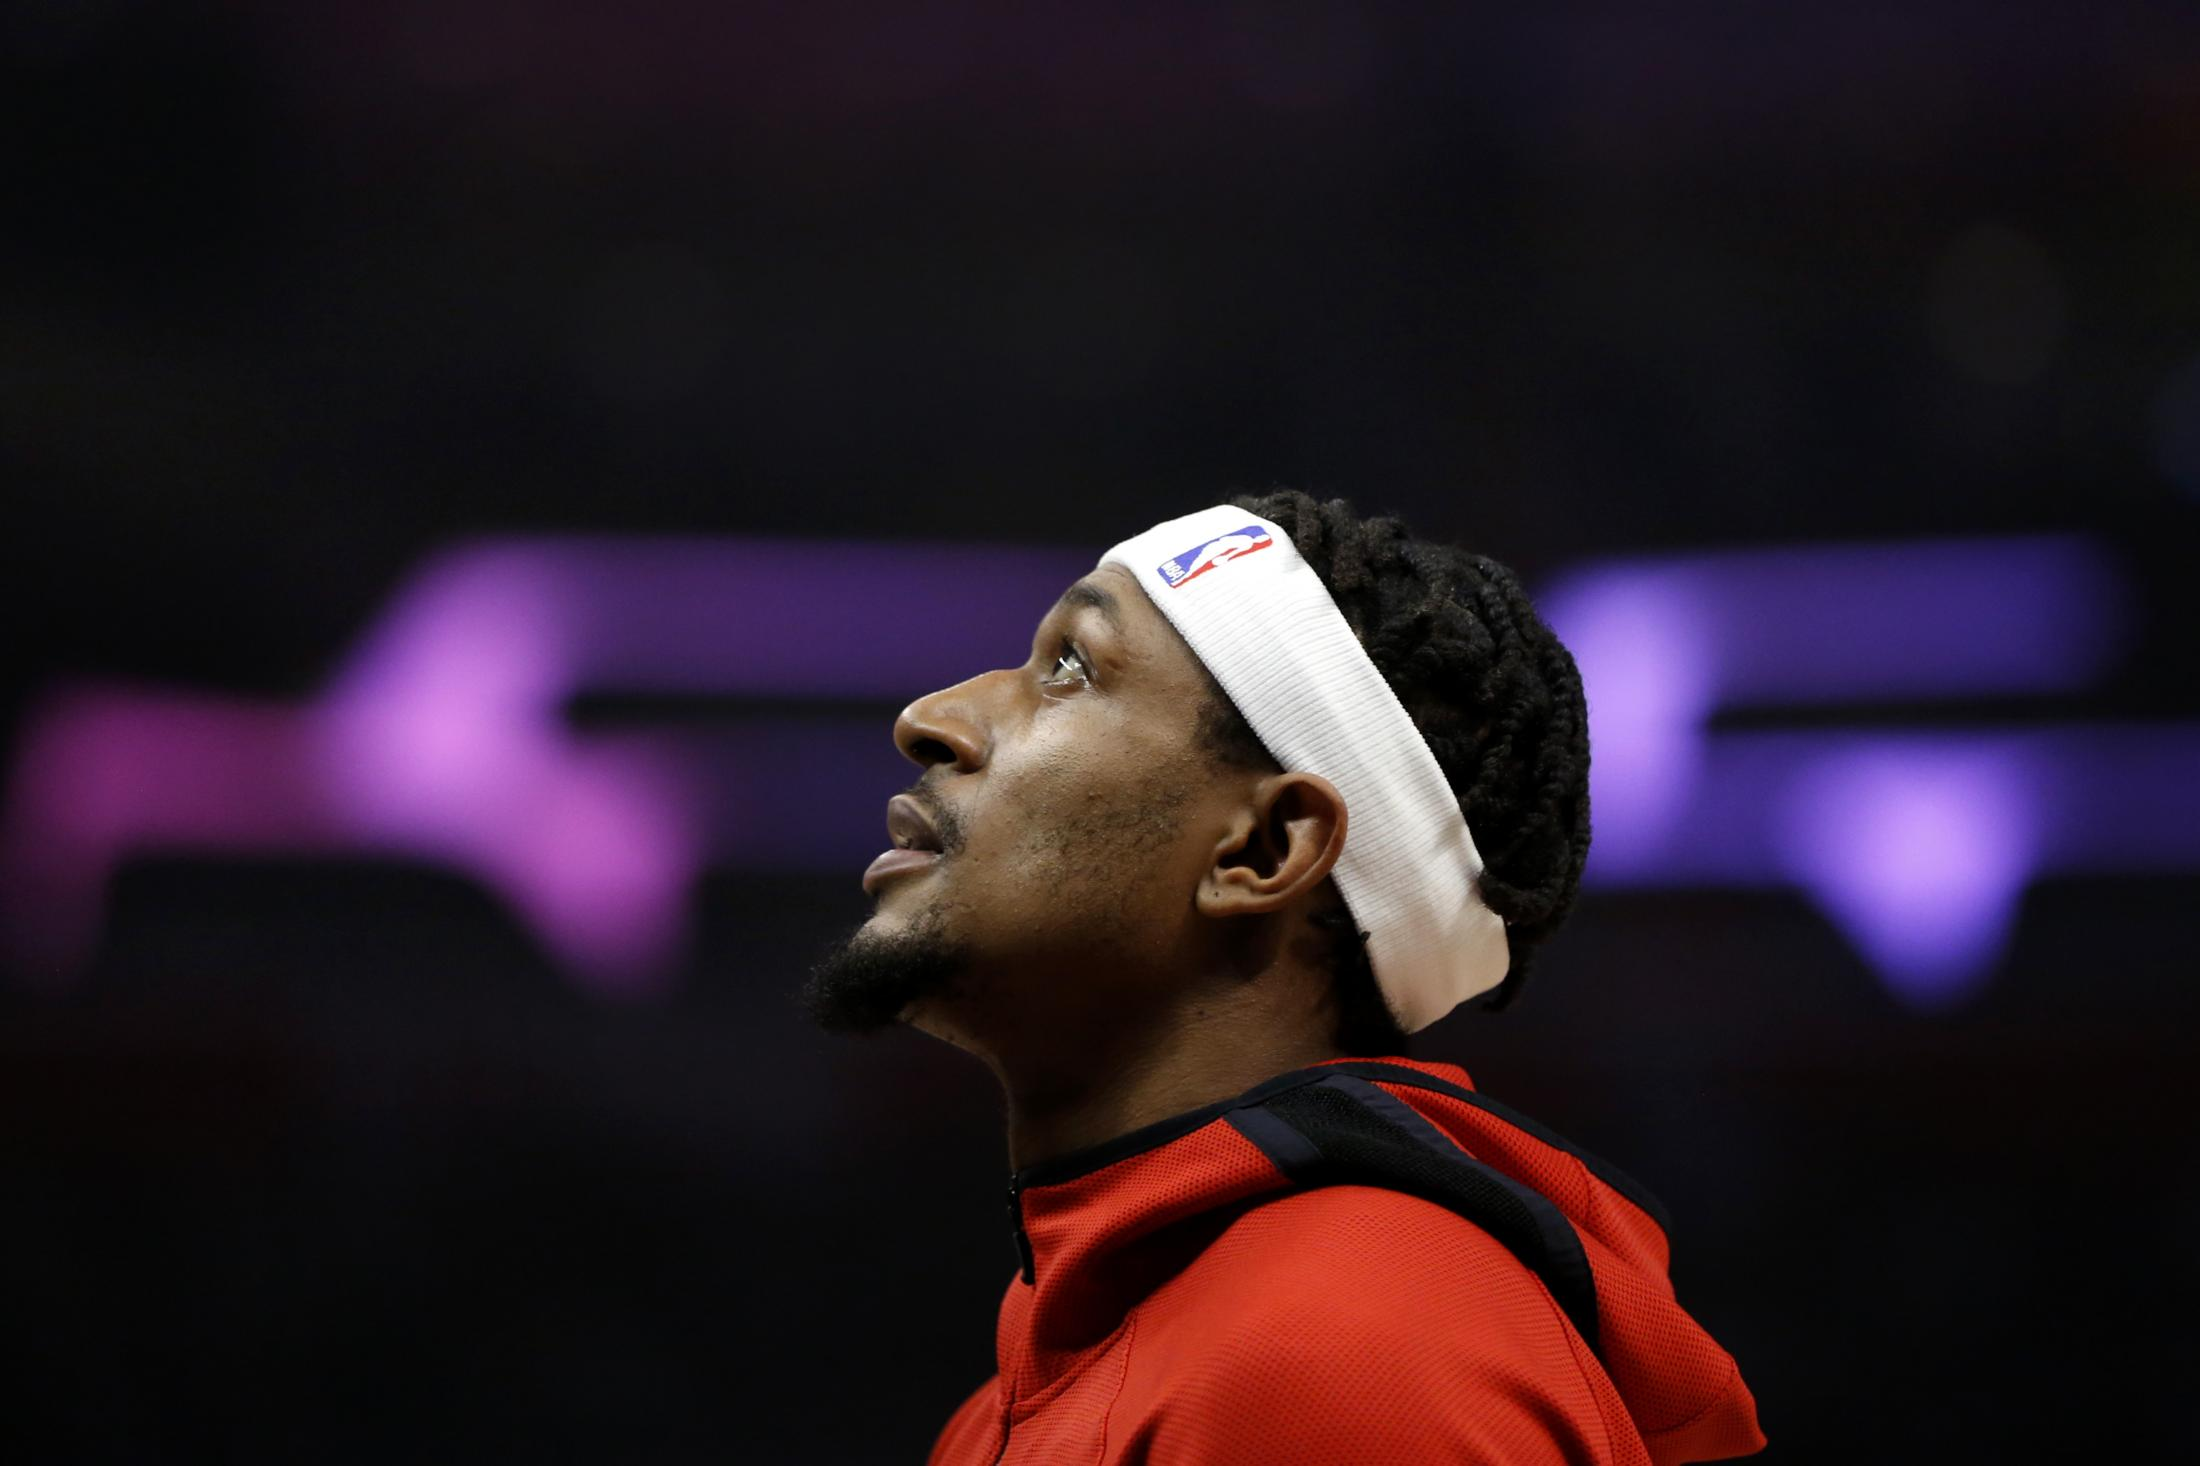 LOS ANGELES, CALIFORNIA - DECEMBER 01: Bradley Beal #3 of the Washington Wizards looks on ahead of a game against the Los Angeles Clippers at Staples Center on December 01, 2019 in Los Angeles, California. NOTE TO USER: User expressly acknowledges and agrees that, by downloading and or using this photograph, User is consenting to the terms and conditions of the Getty Images License Agreement. (Photo by Katharine Lotze/Getty Images)